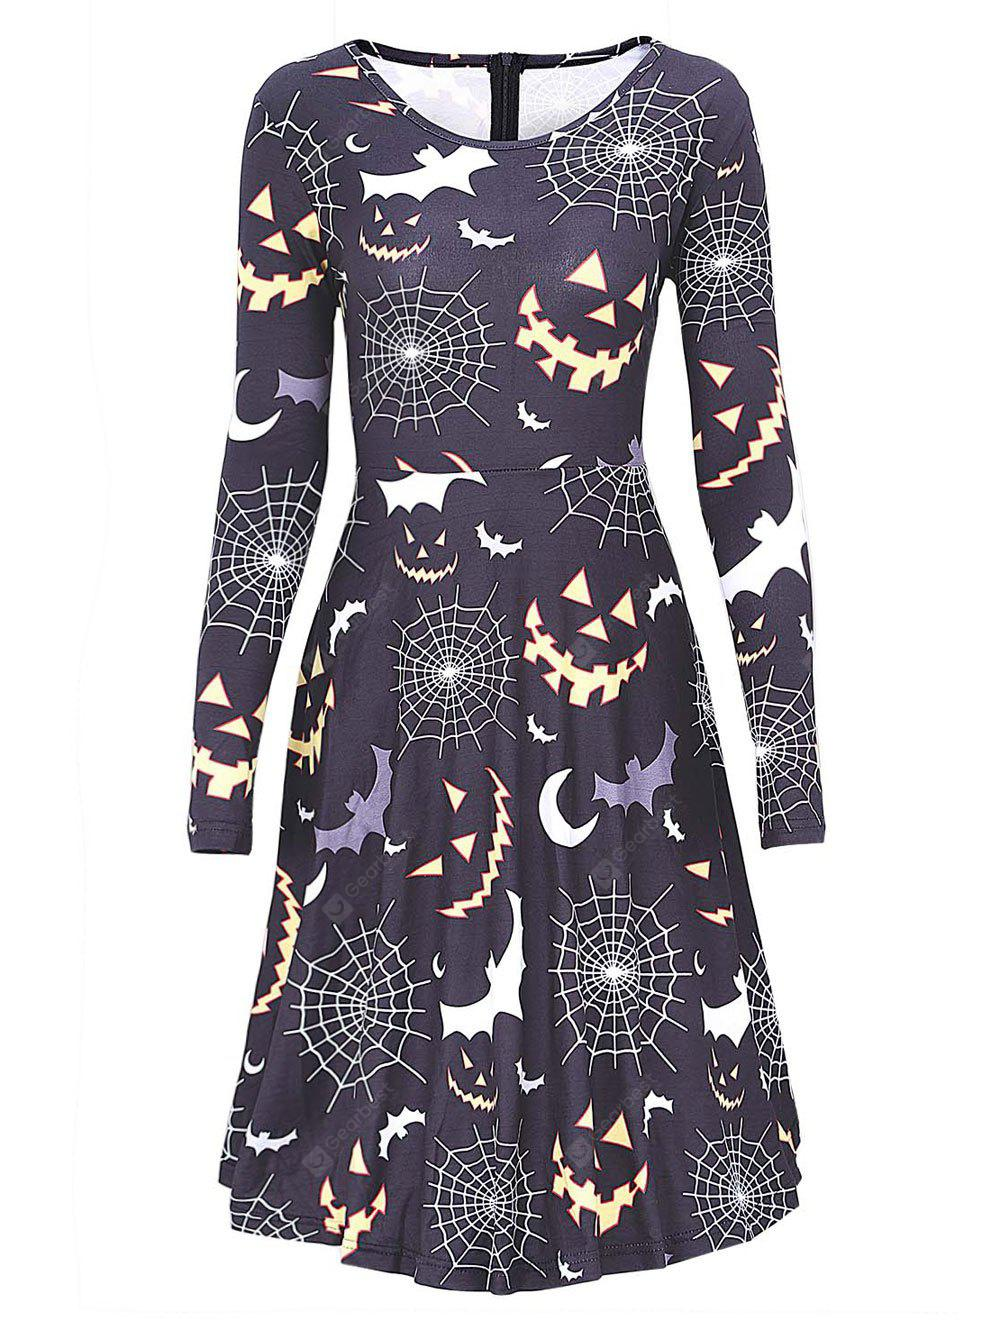 Bat Spider Web Print Halloween Swing Dress